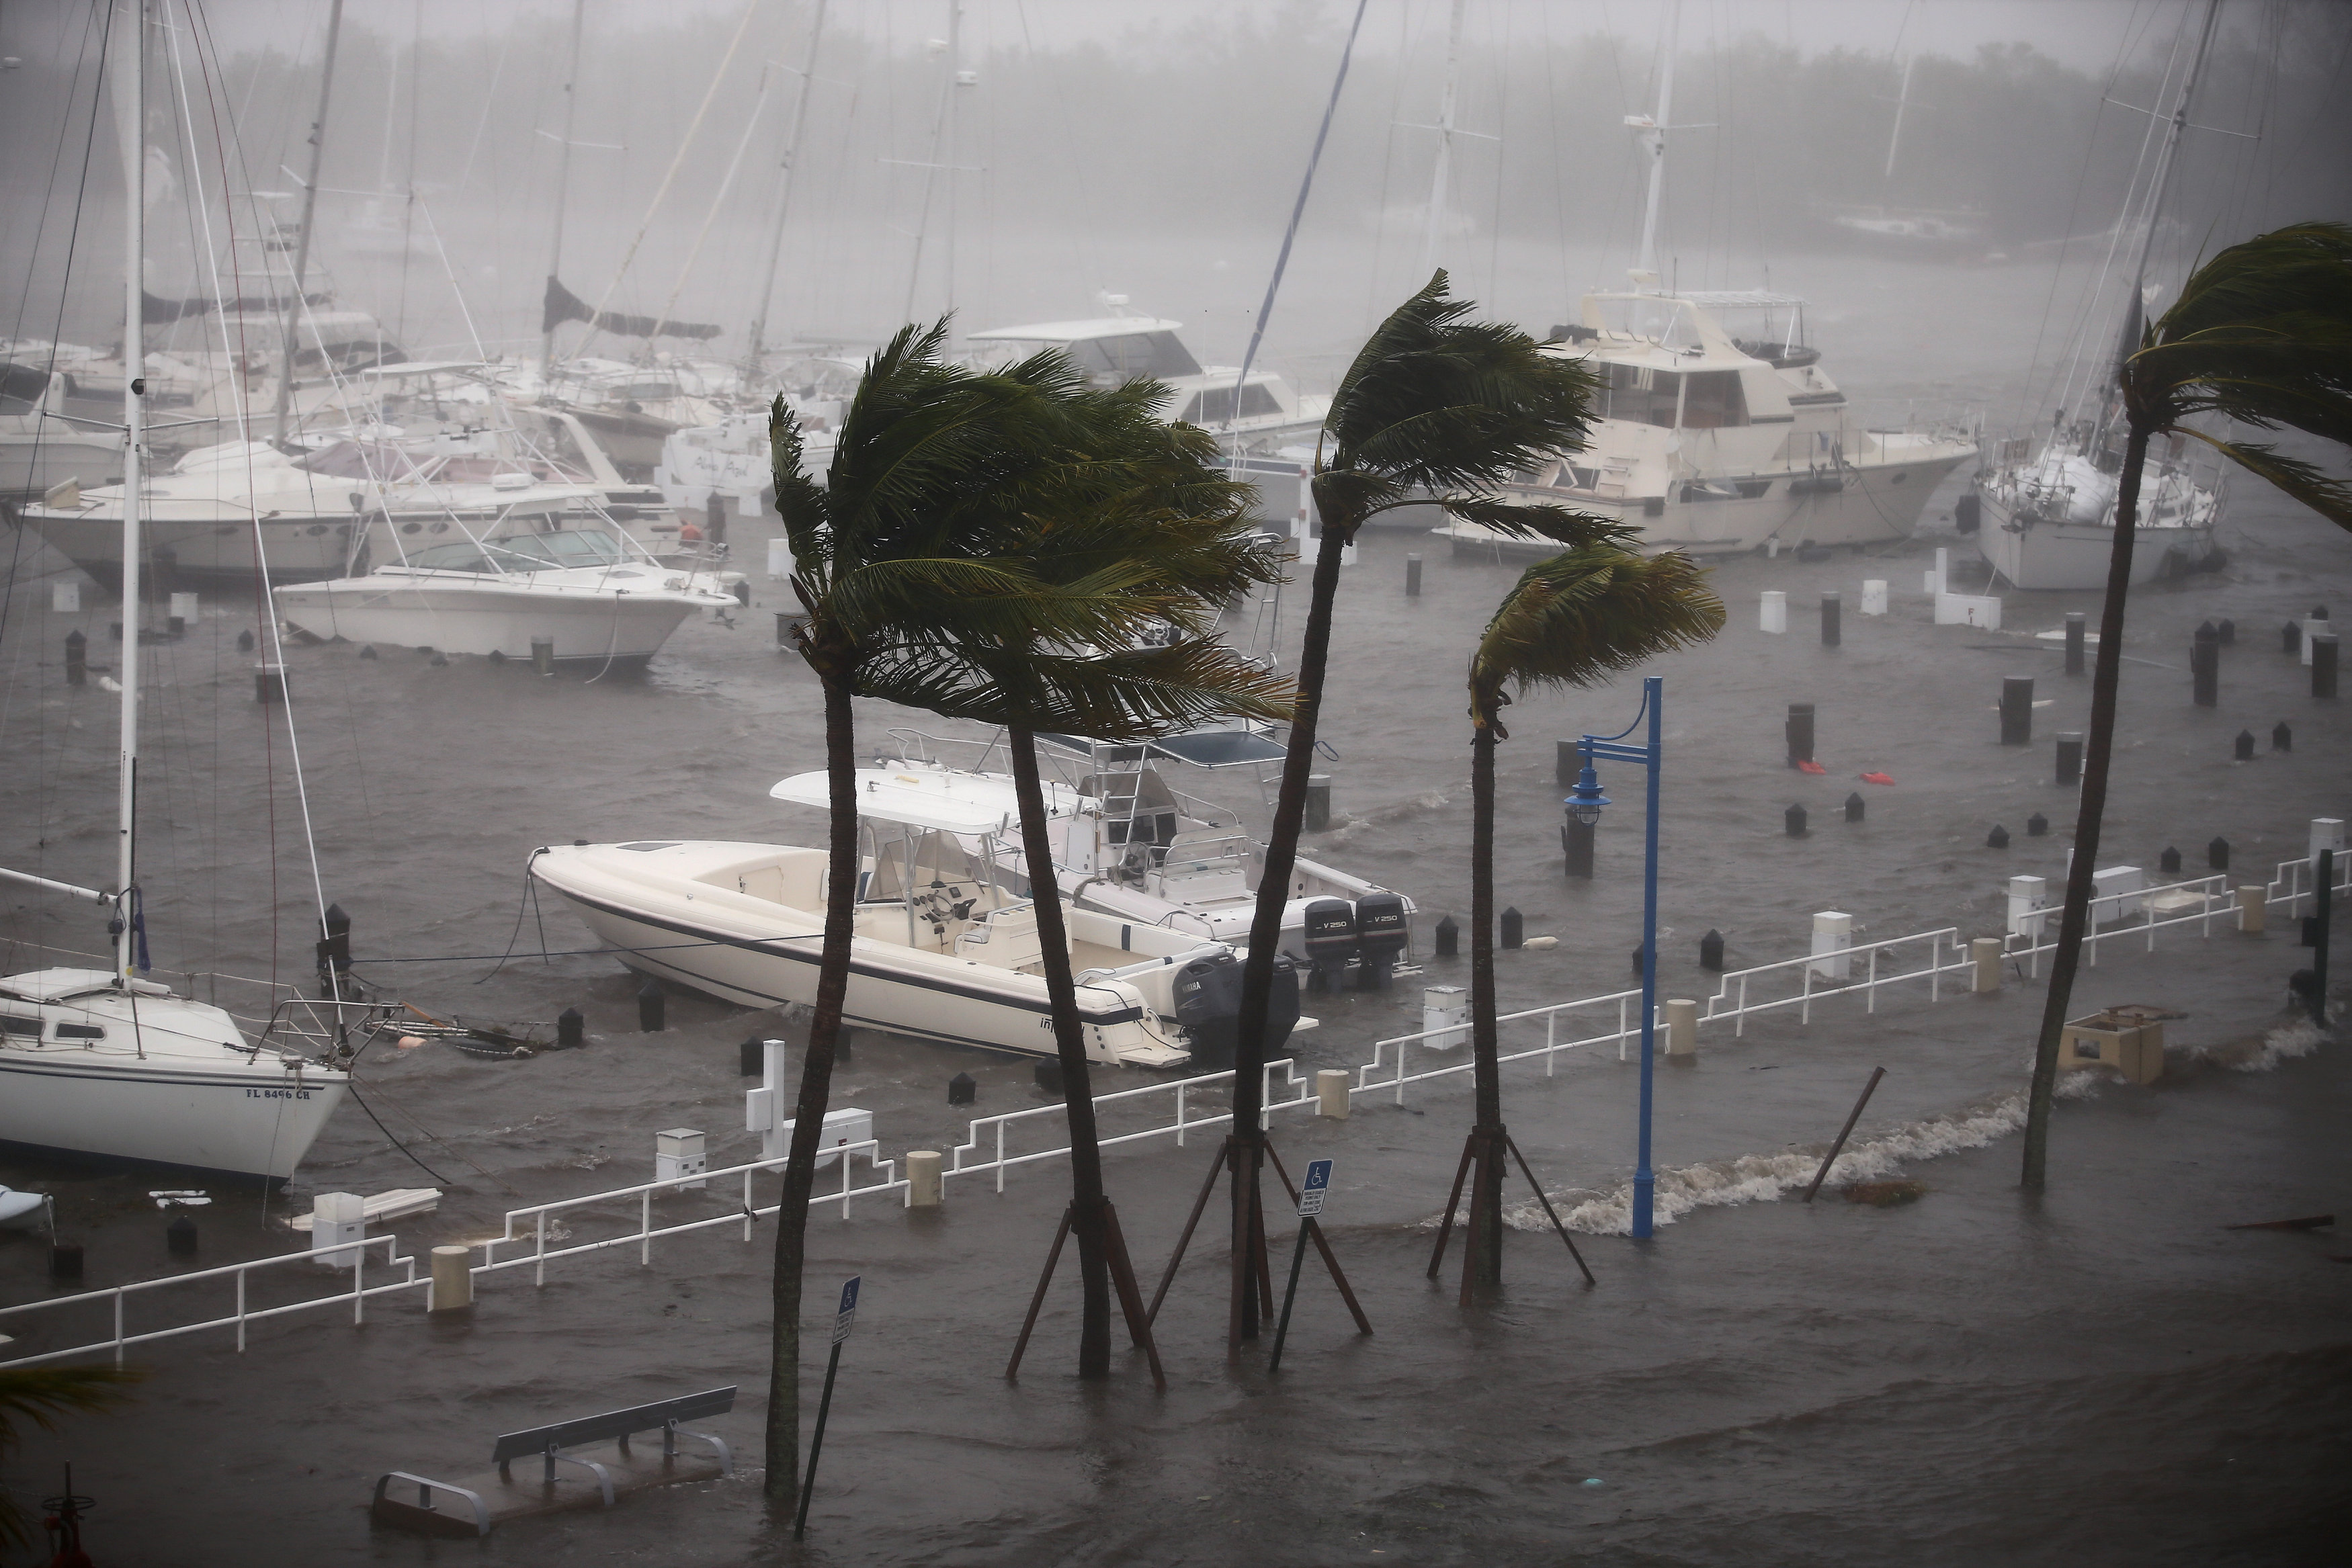 Boats are seen at a marina in Coconut Grove as Hurricane Irma arrives at south Florida, in Miami, Florida on Sept. 10, 2017. (REUTERS/Carlos Barria)